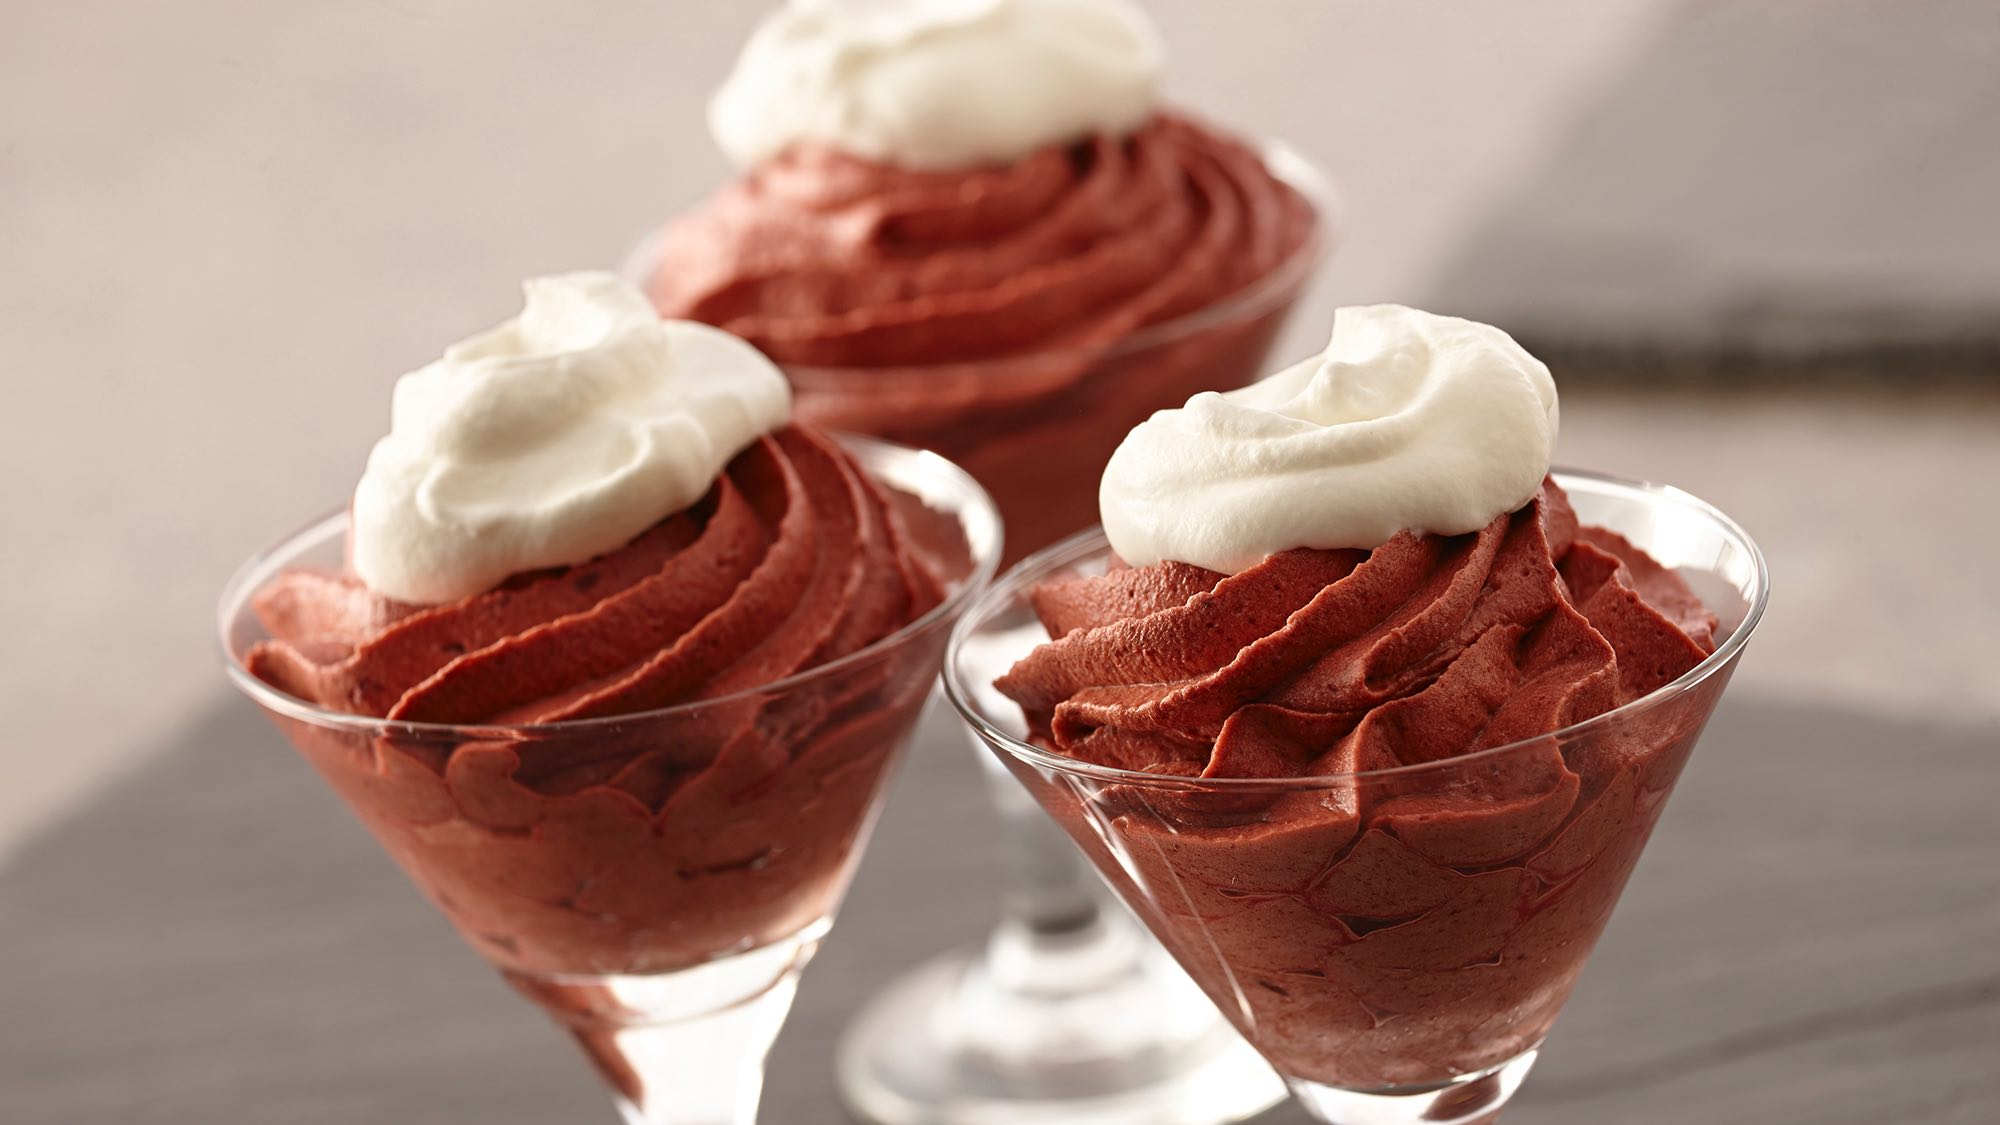 red-velvet-mousse-with-vanilla-whipped-cream.jpg